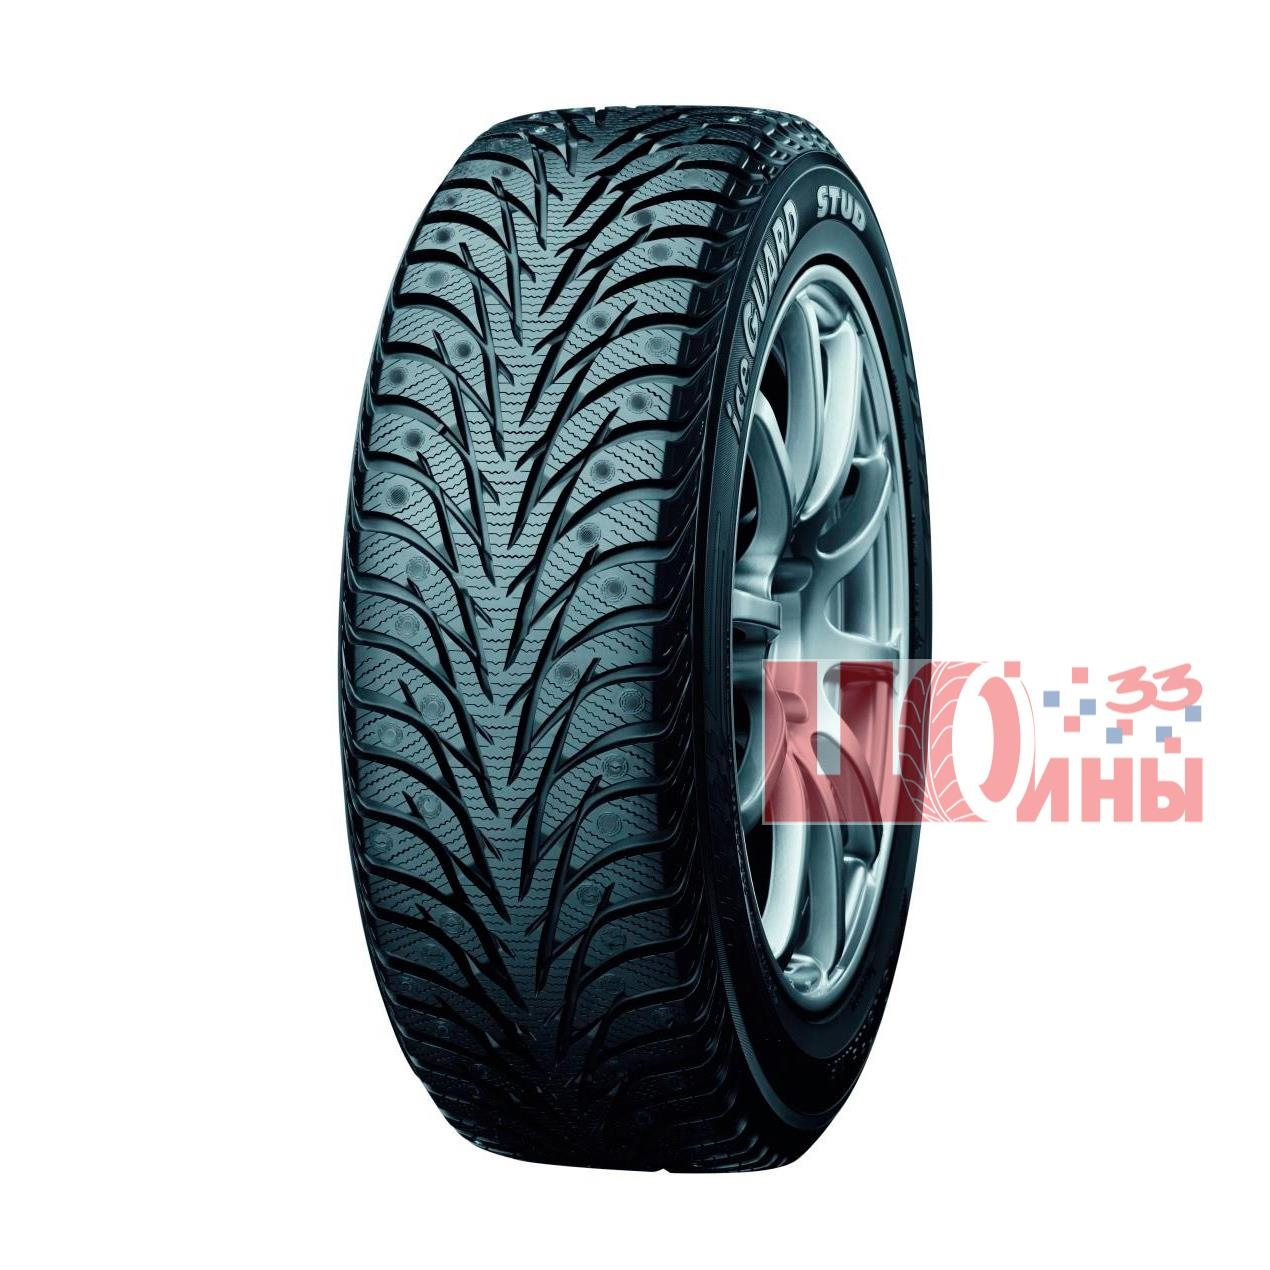 Б/У 195/65 R15 Зима Шипы  YOKOHAMA Ice Guard IG-35 Кат. 4